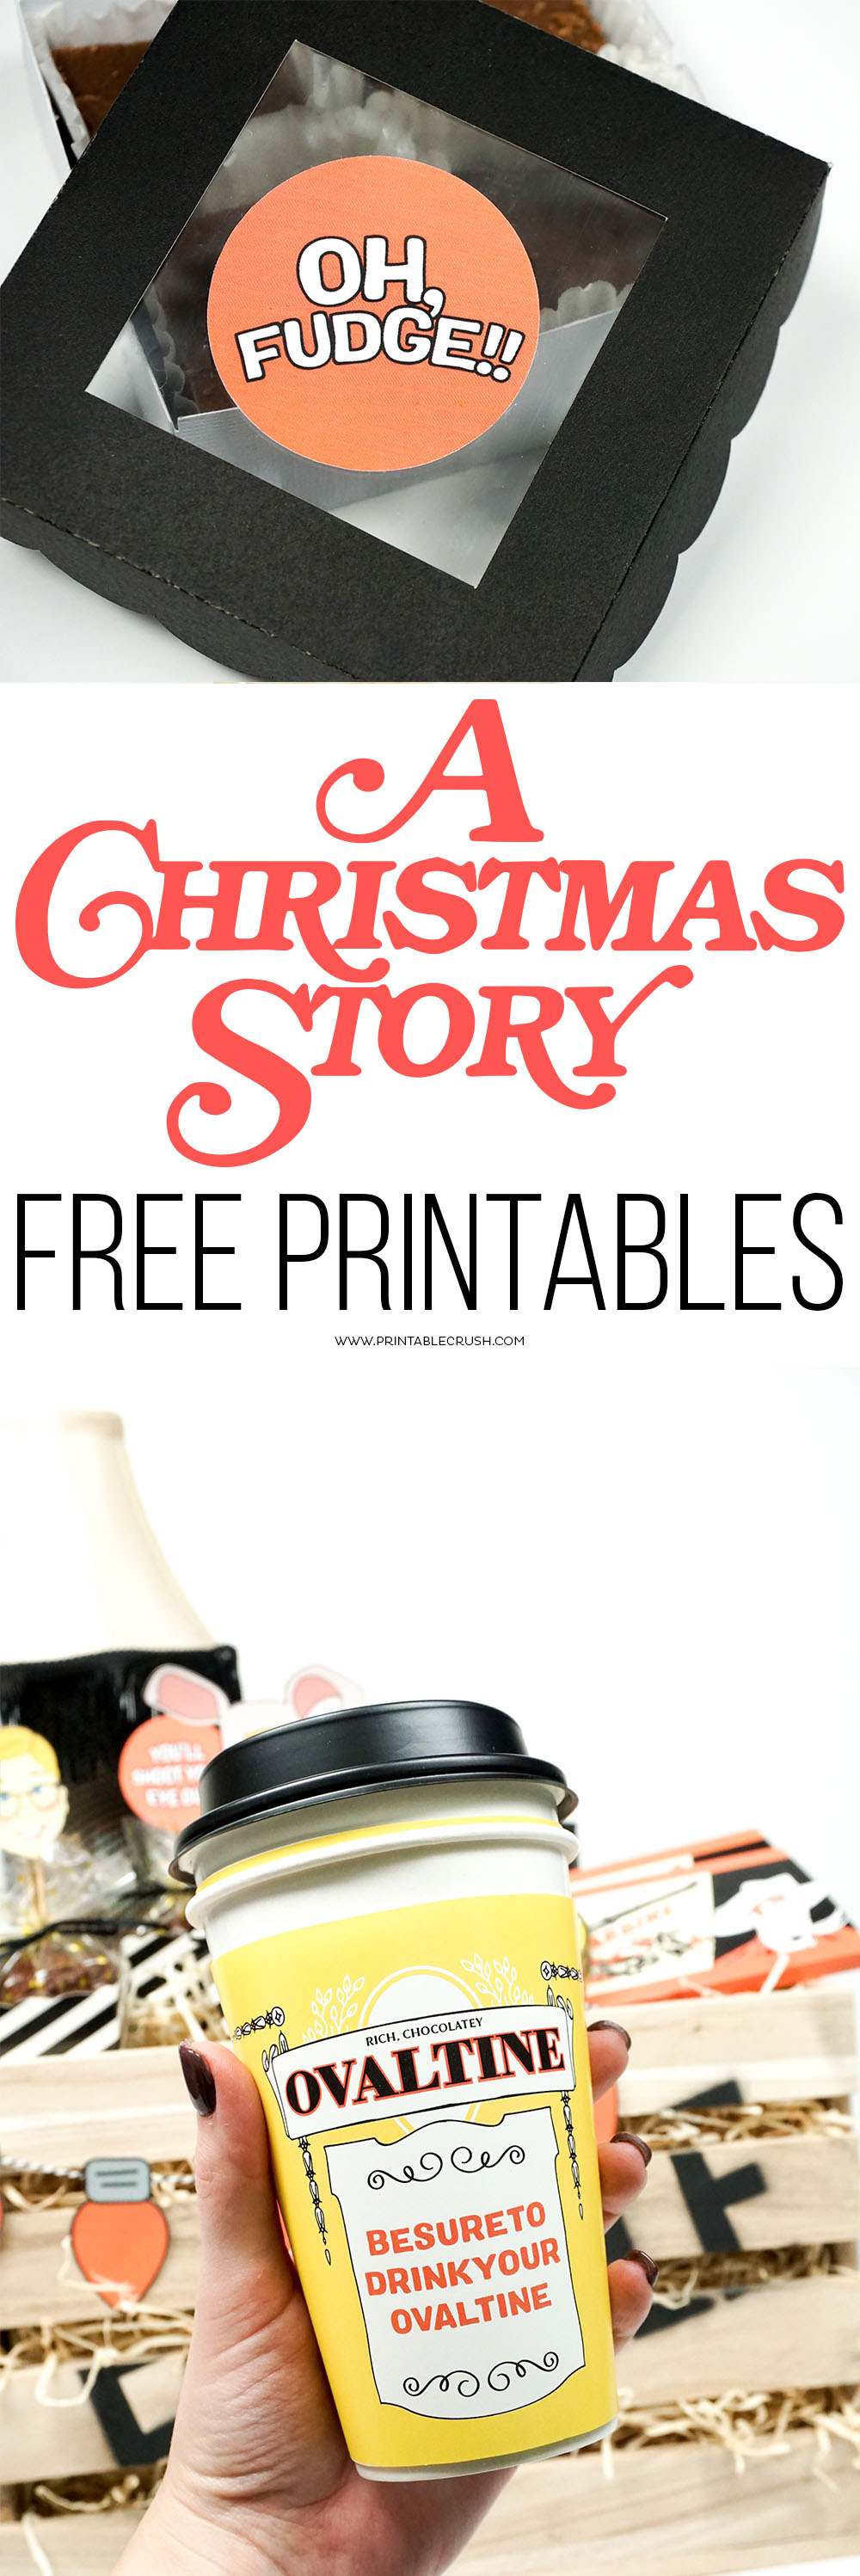 Download A Christmas Story FREE Printables to use at parties or for creative Christmas gifts. Includes 8 designs, from candy wrappers and cupcake toppers, to gift labels!